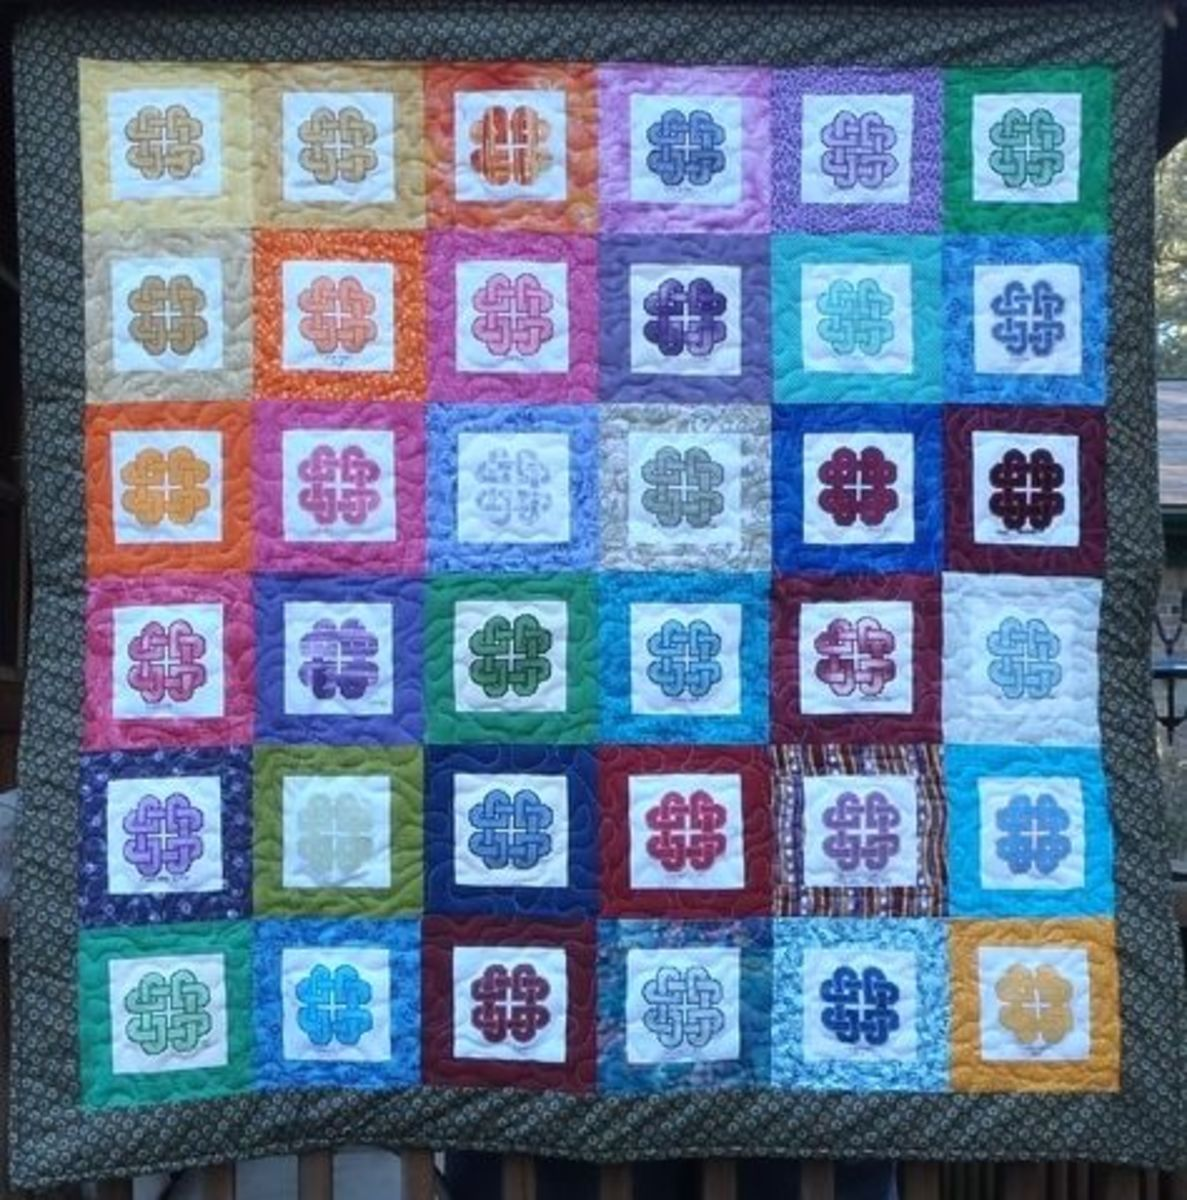 Knotted Hearts Quilt as Stitched by the WOCS Group